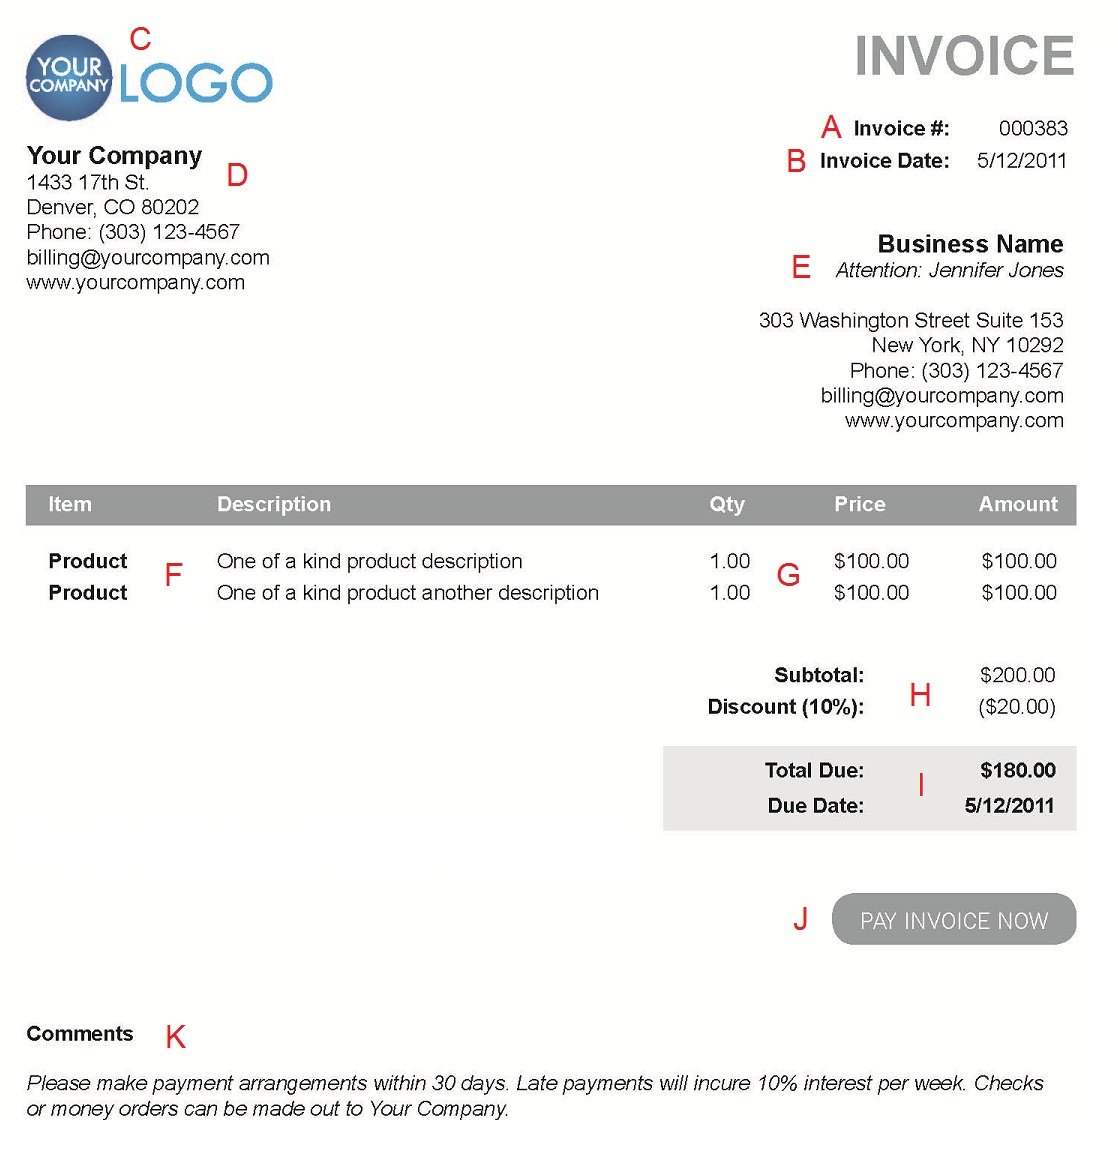 Occupyhistoryus  Marvelous The  Different Sections Of An Electronic Payment Invoice With Heavenly A  With Attractive Invoice Letter Also Send An Invoice In Addition Online Invoice Maker And Define Proforma Invoice As Well As How To Write A Invoice Additionally Zoho Invoice Login From Paysimplecom With Occupyhistoryus  Heavenly The  Different Sections Of An Electronic Payment Invoice With Attractive A  And Marvelous Invoice Letter Also Send An Invoice In Addition Online Invoice Maker From Paysimplecom